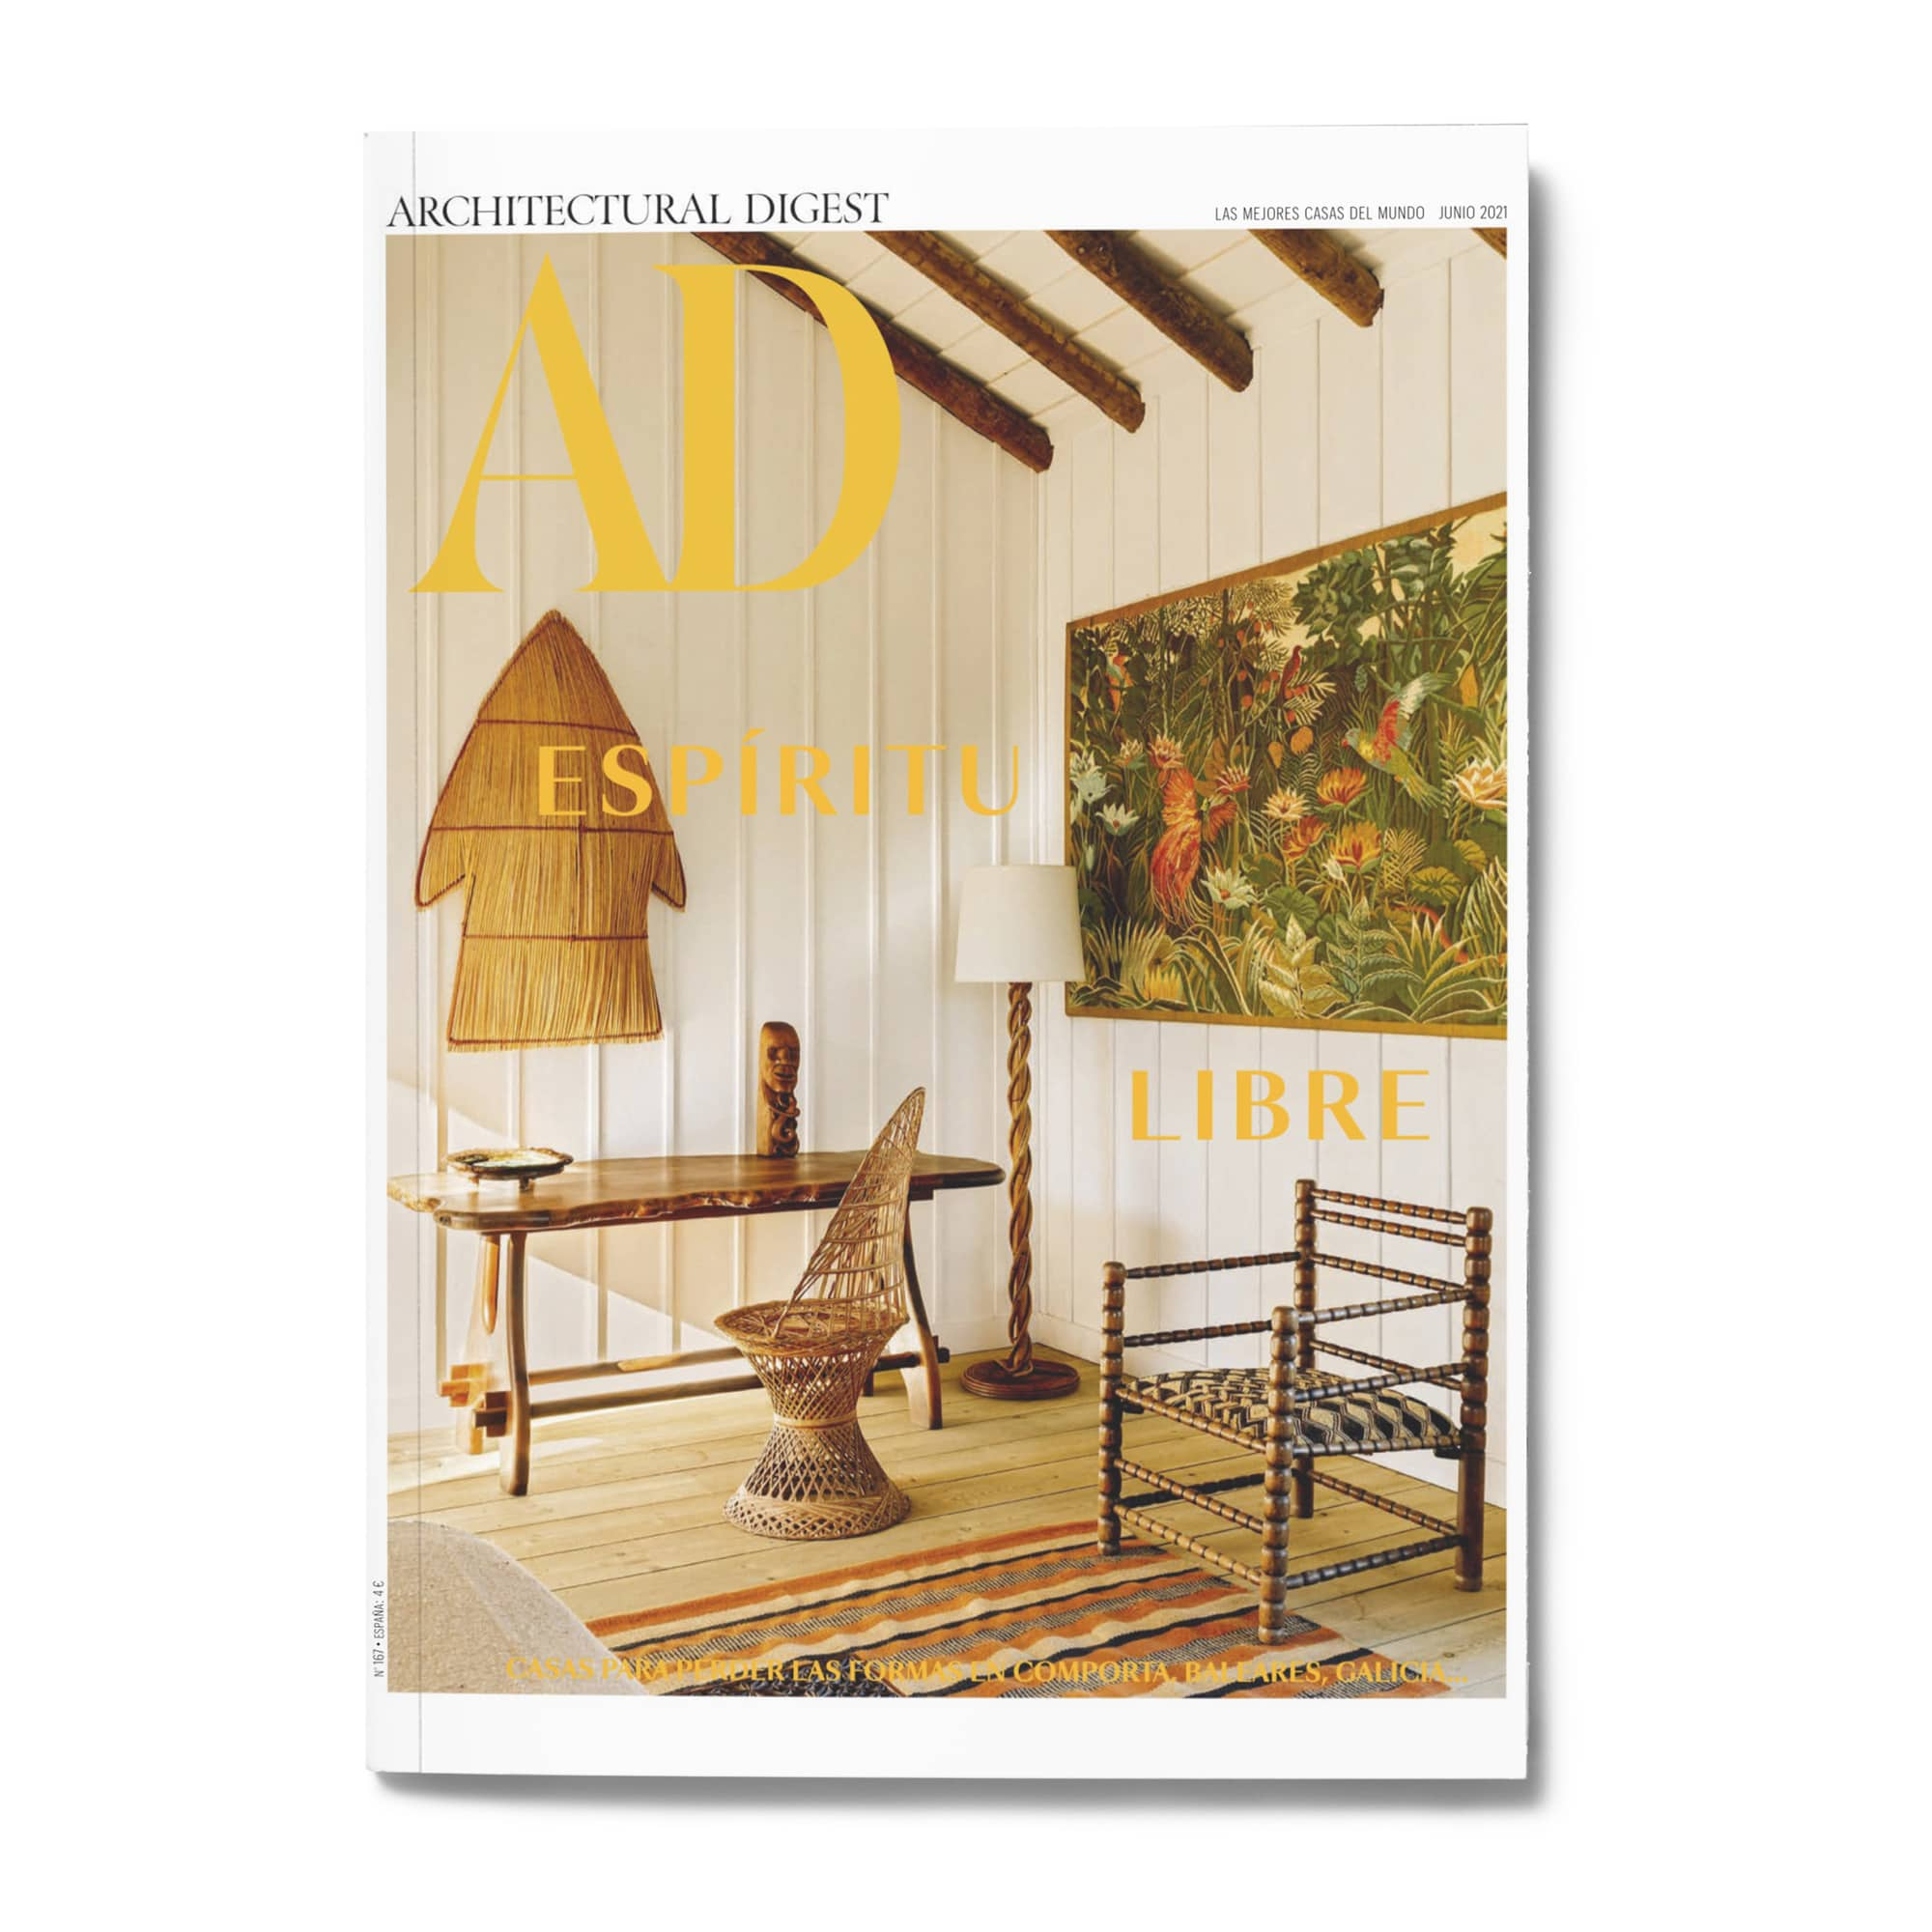 Architectural Digest - DESIGN BY MIGUEL SOEIRO